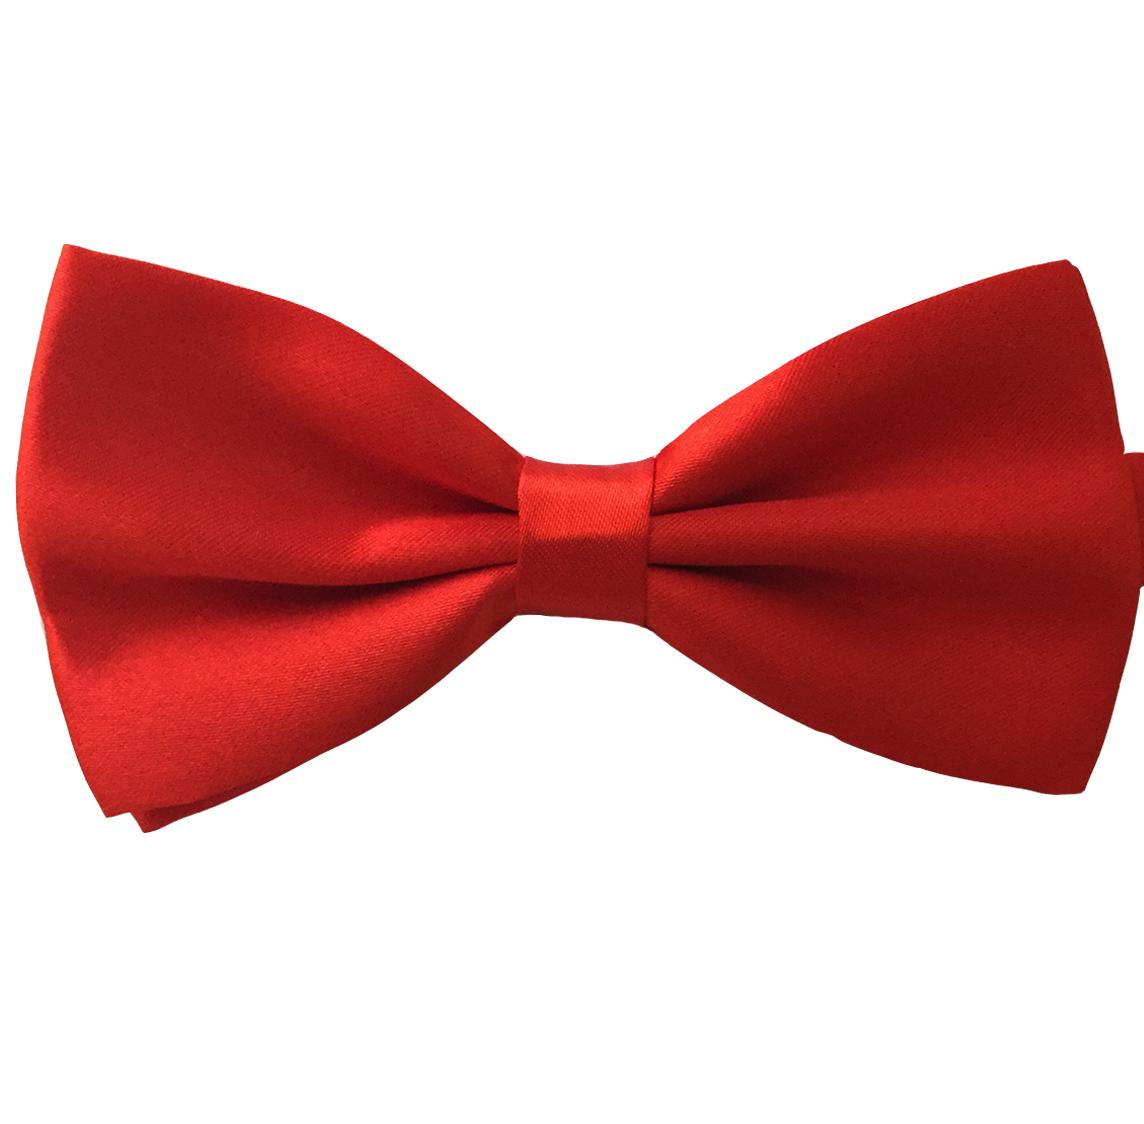 Find a Red Bow Tie for Men and a Satin Red Bow Tie at Macy's. Macy's Presents: The Edit - A curated mix of fashion and inspiration Check It Out Free Shipping with $49 purchase + Free Store Pickup.